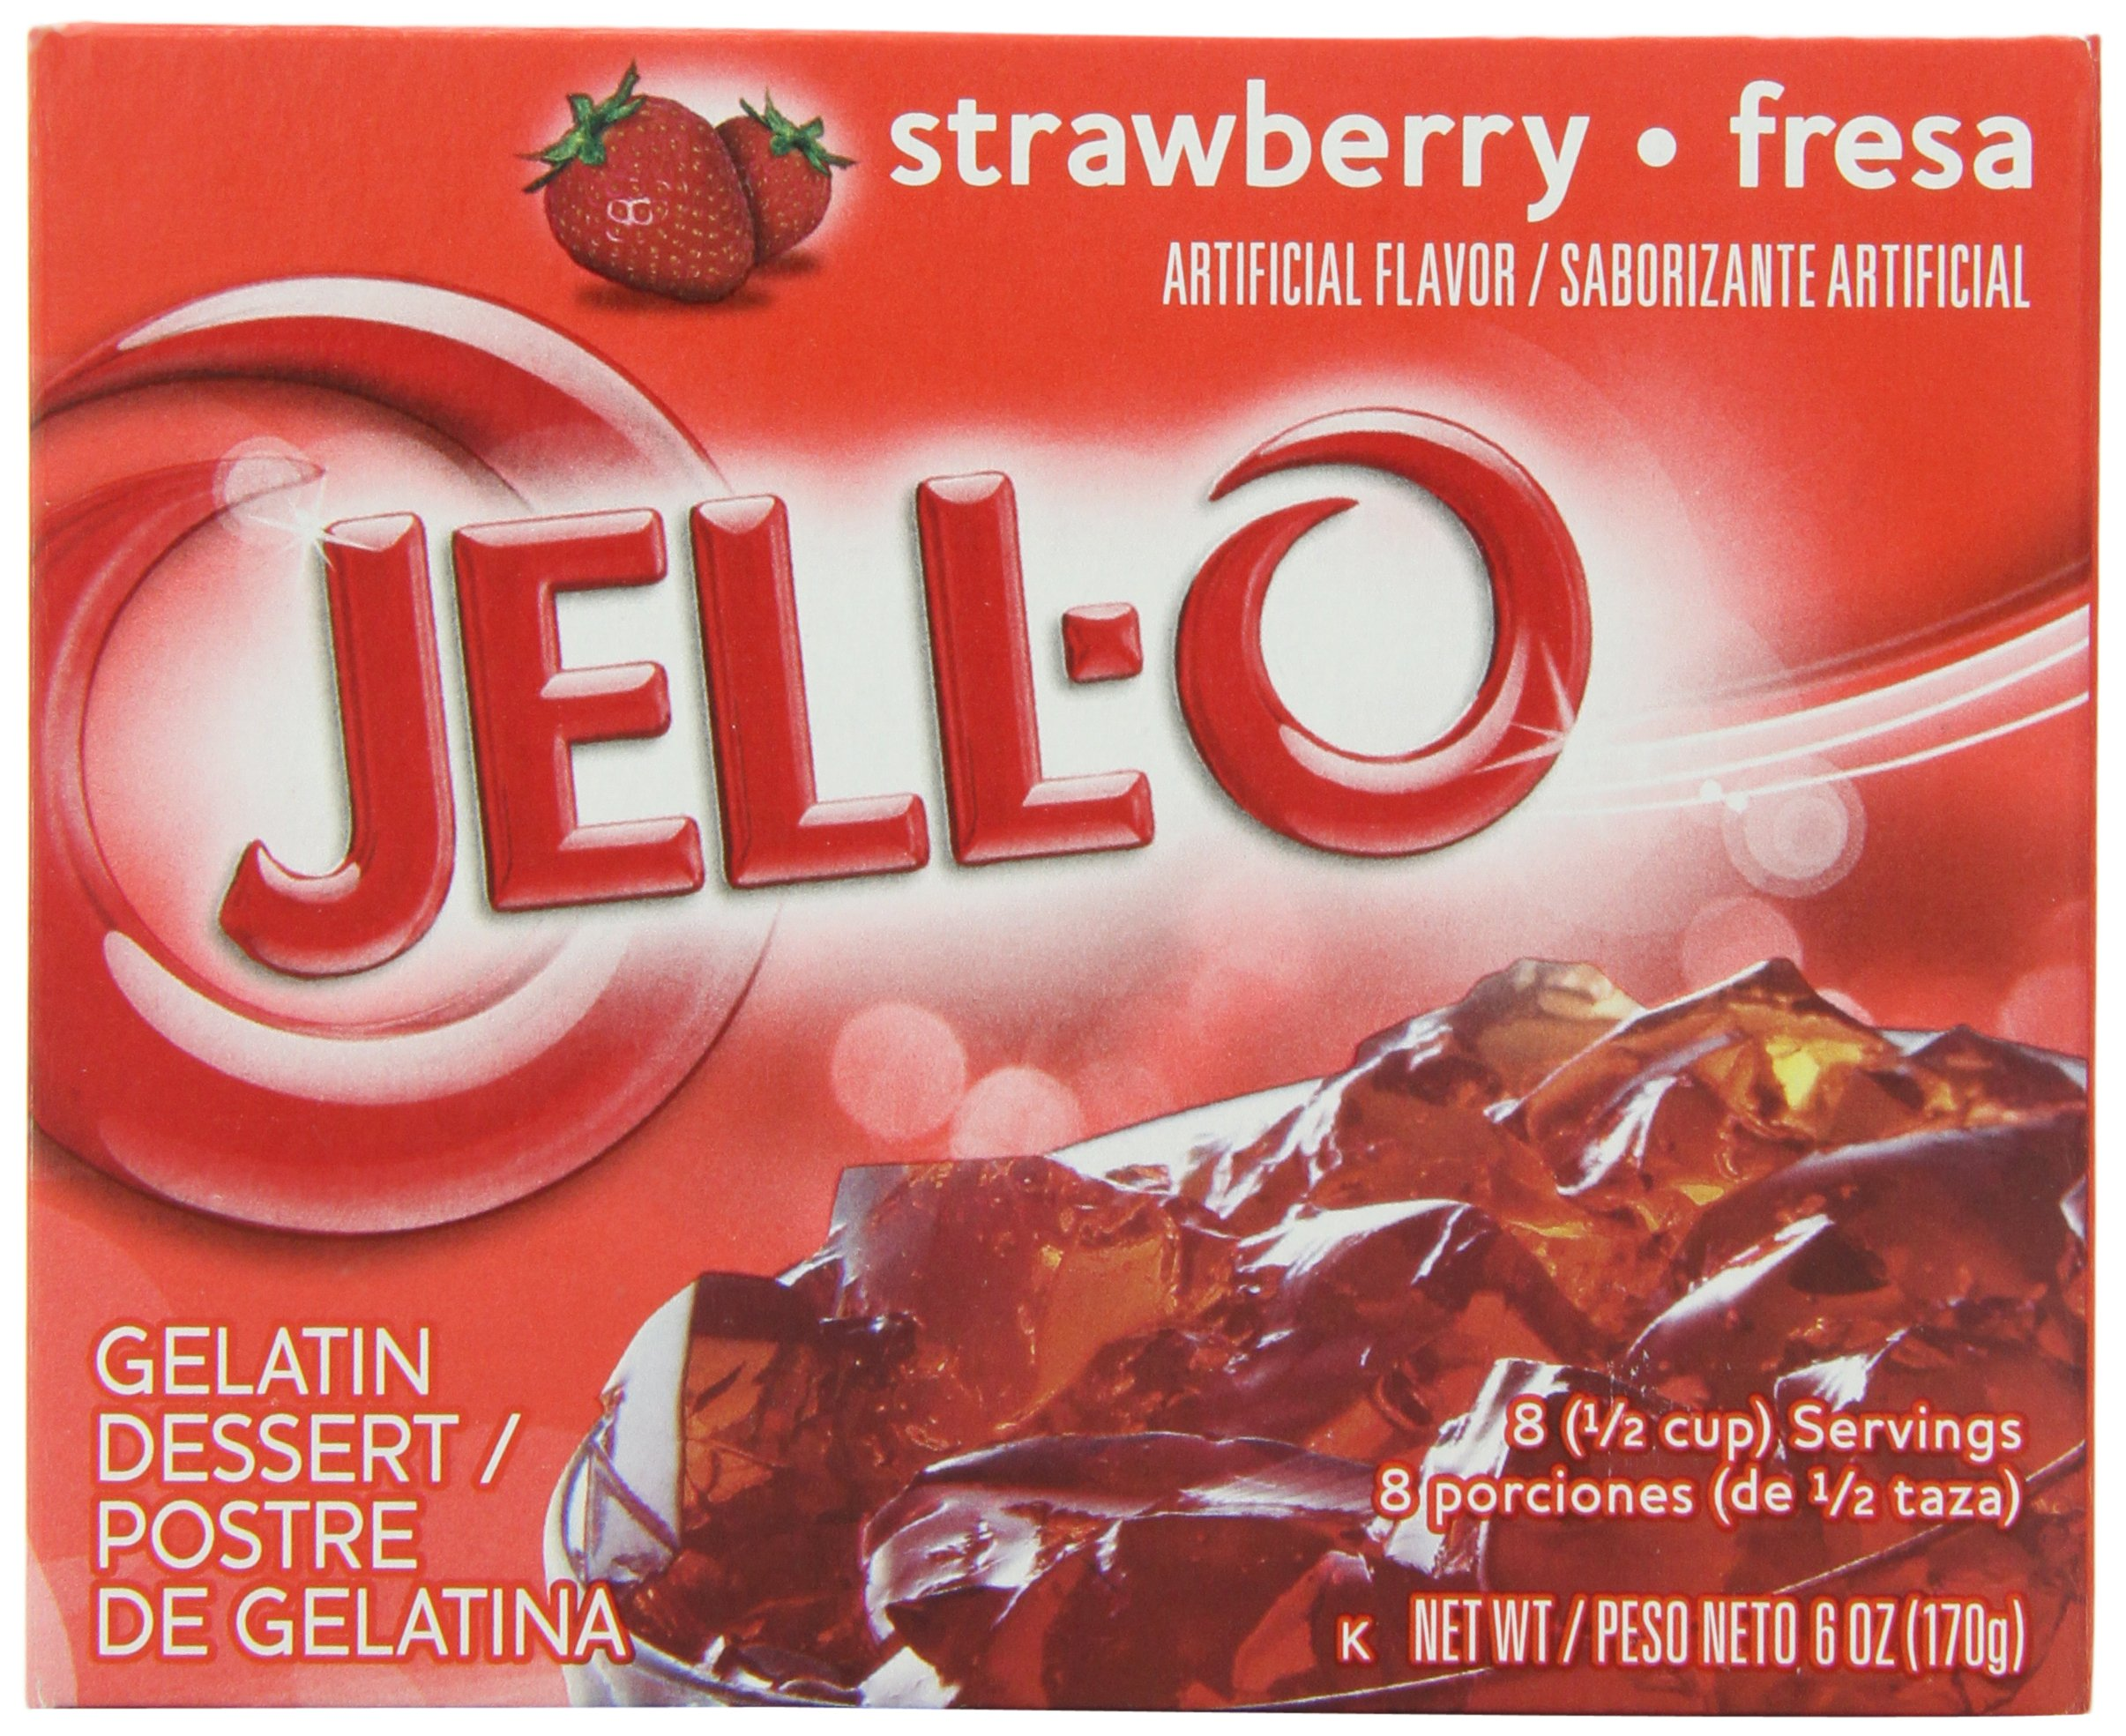 JELL-O Strawberry Gelatin Dessert Mix (6 oz Boxes, Pack of 24) by Jell-O (Image #1)